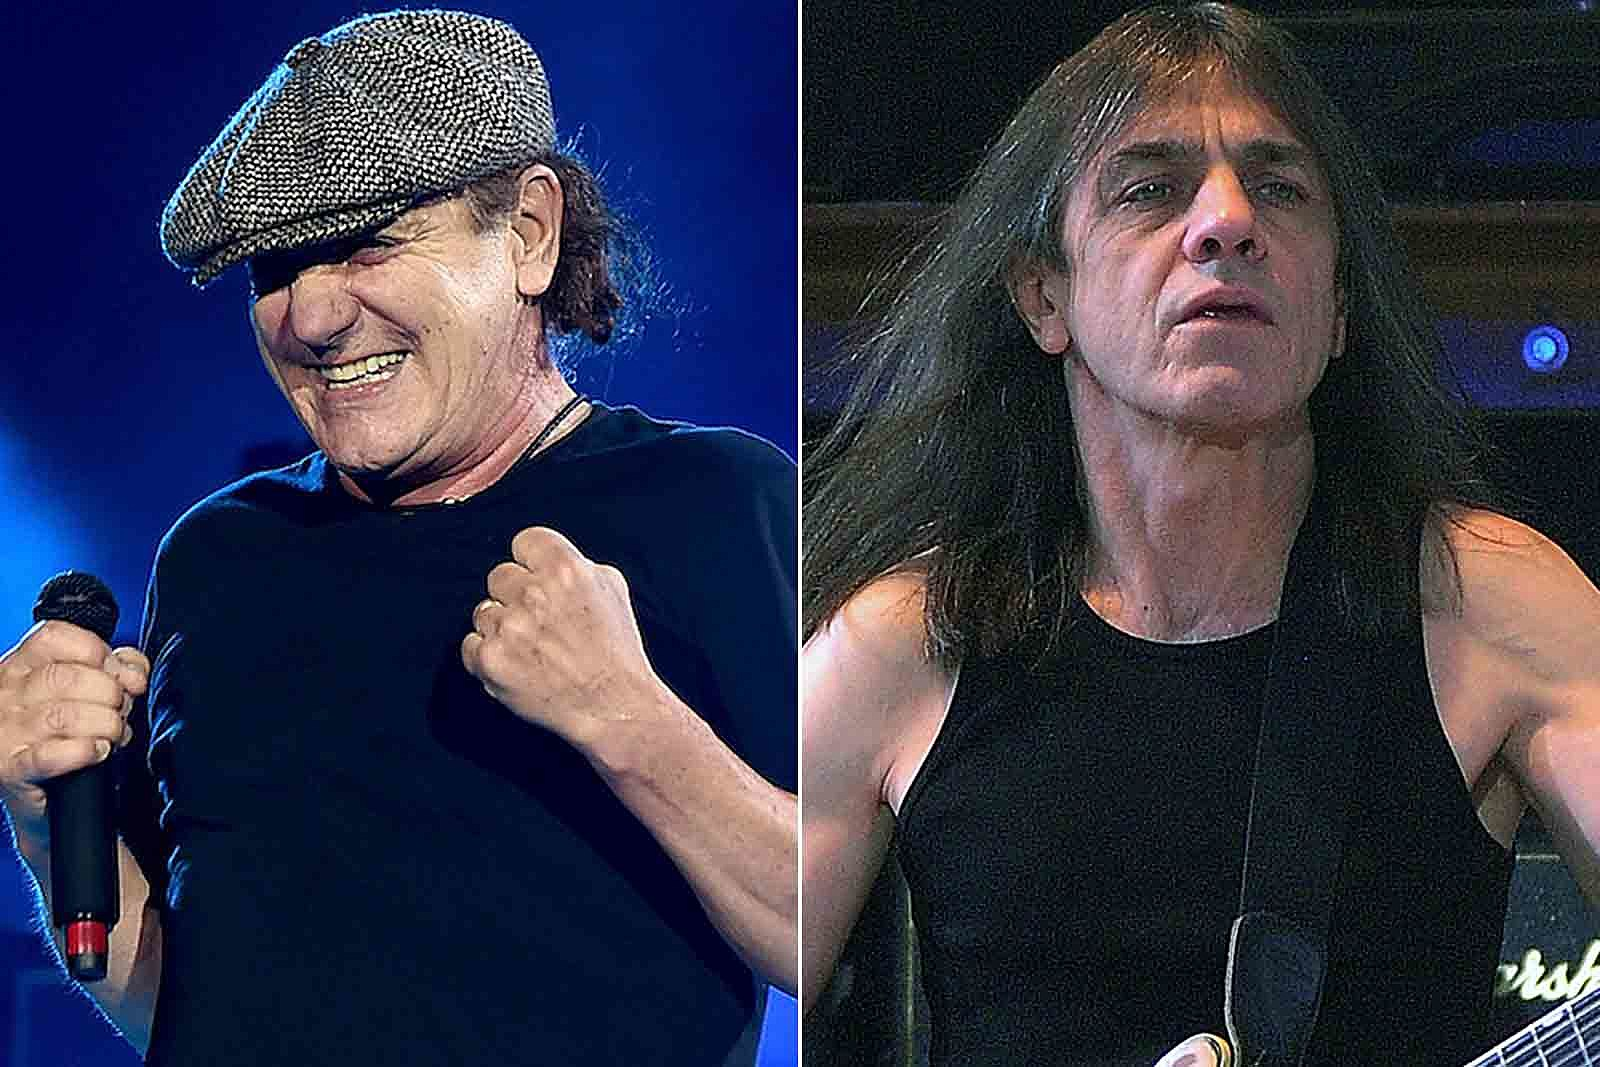 Brian Johnson Says Malcolm Young 'Never Missed a Trick'